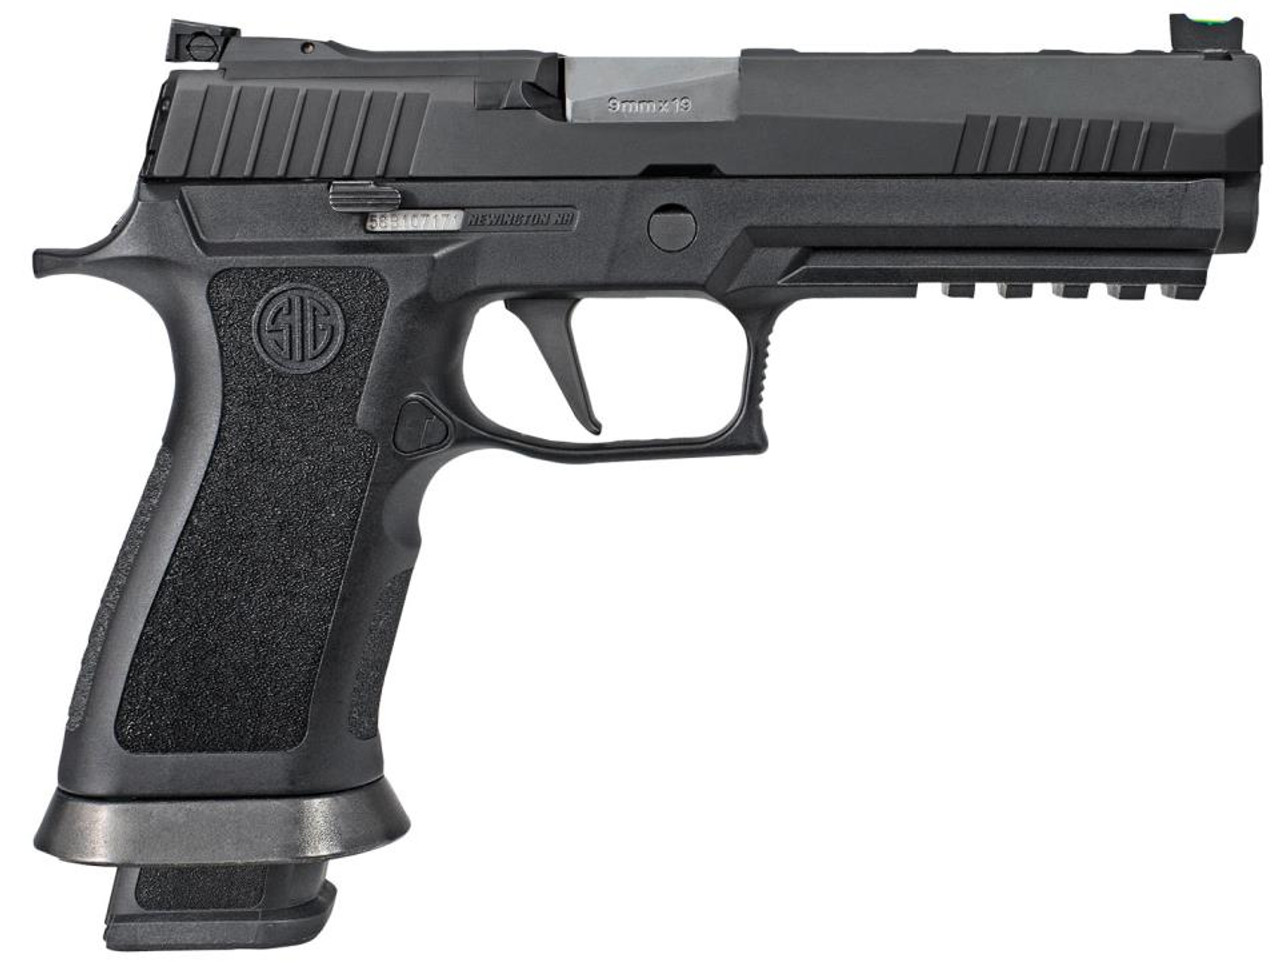 Sig P320 X5 Full Size 9mm, 5